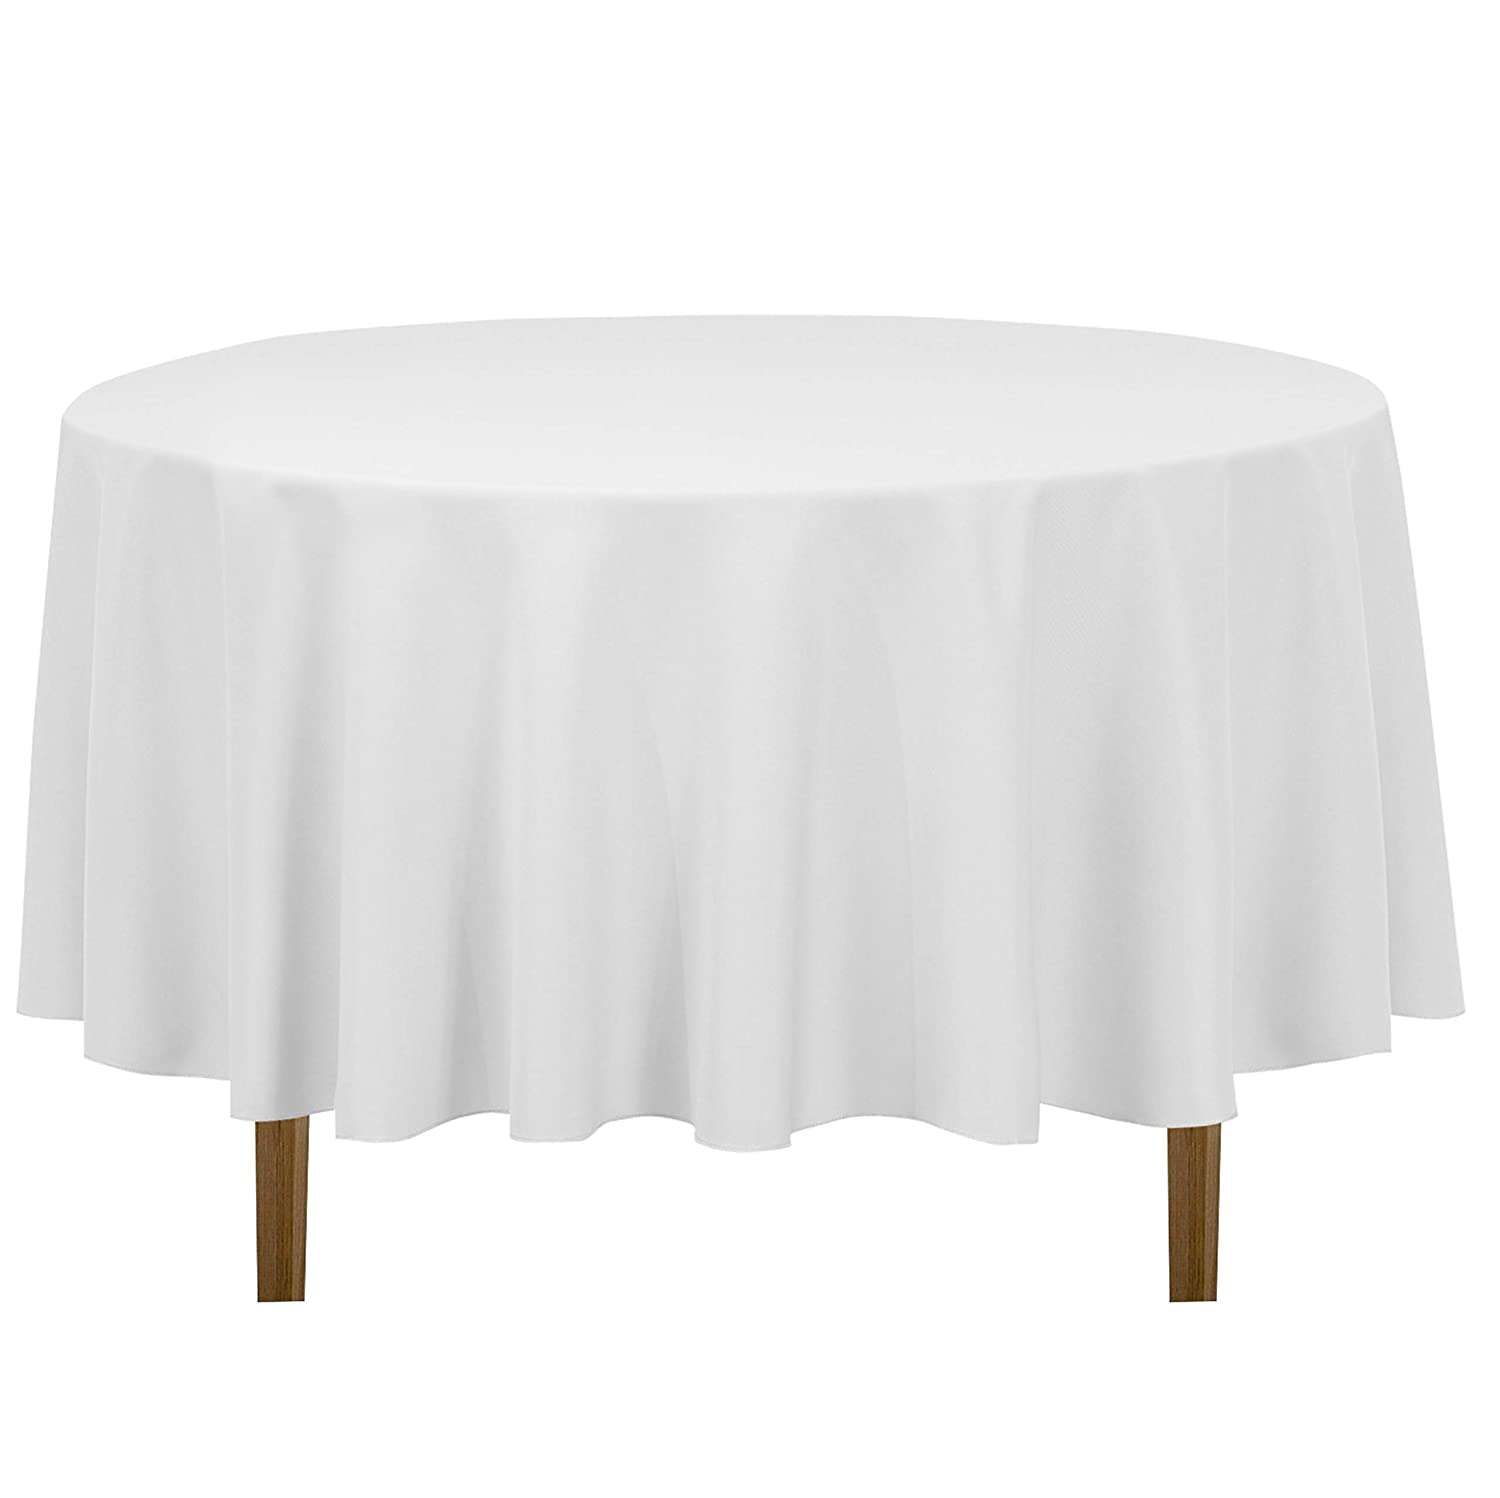 White Linen Tablecloth 300×300.jpg